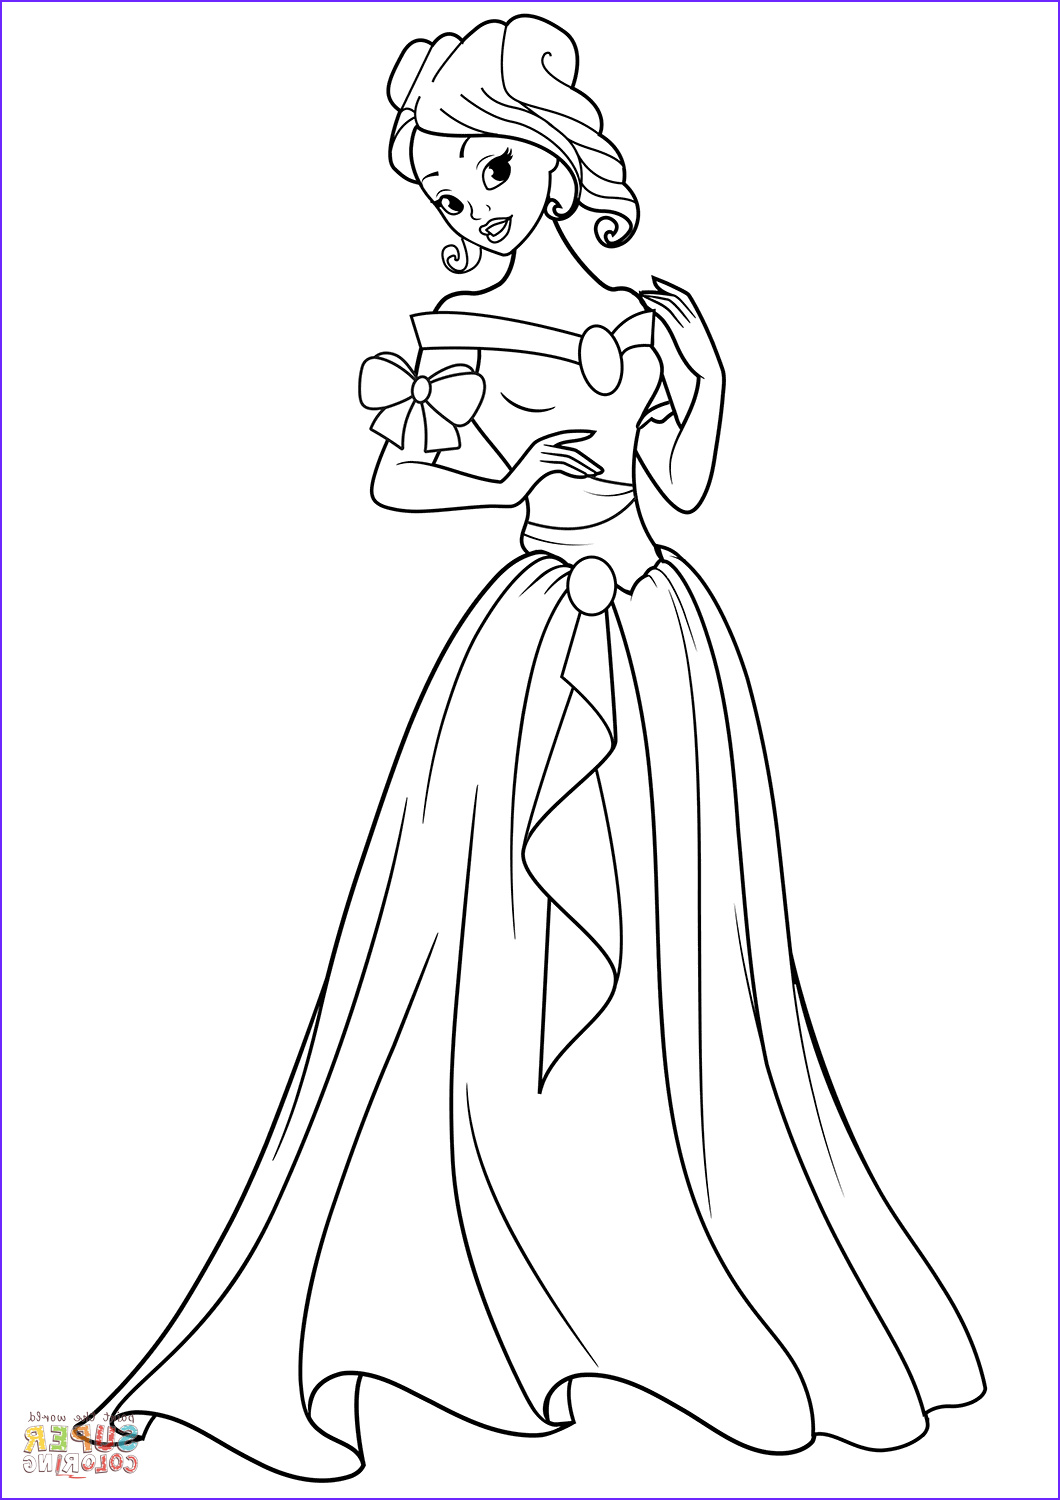 Princess Coloring Pages to Print Inspirational Images Beautiful Princess Coloring Page